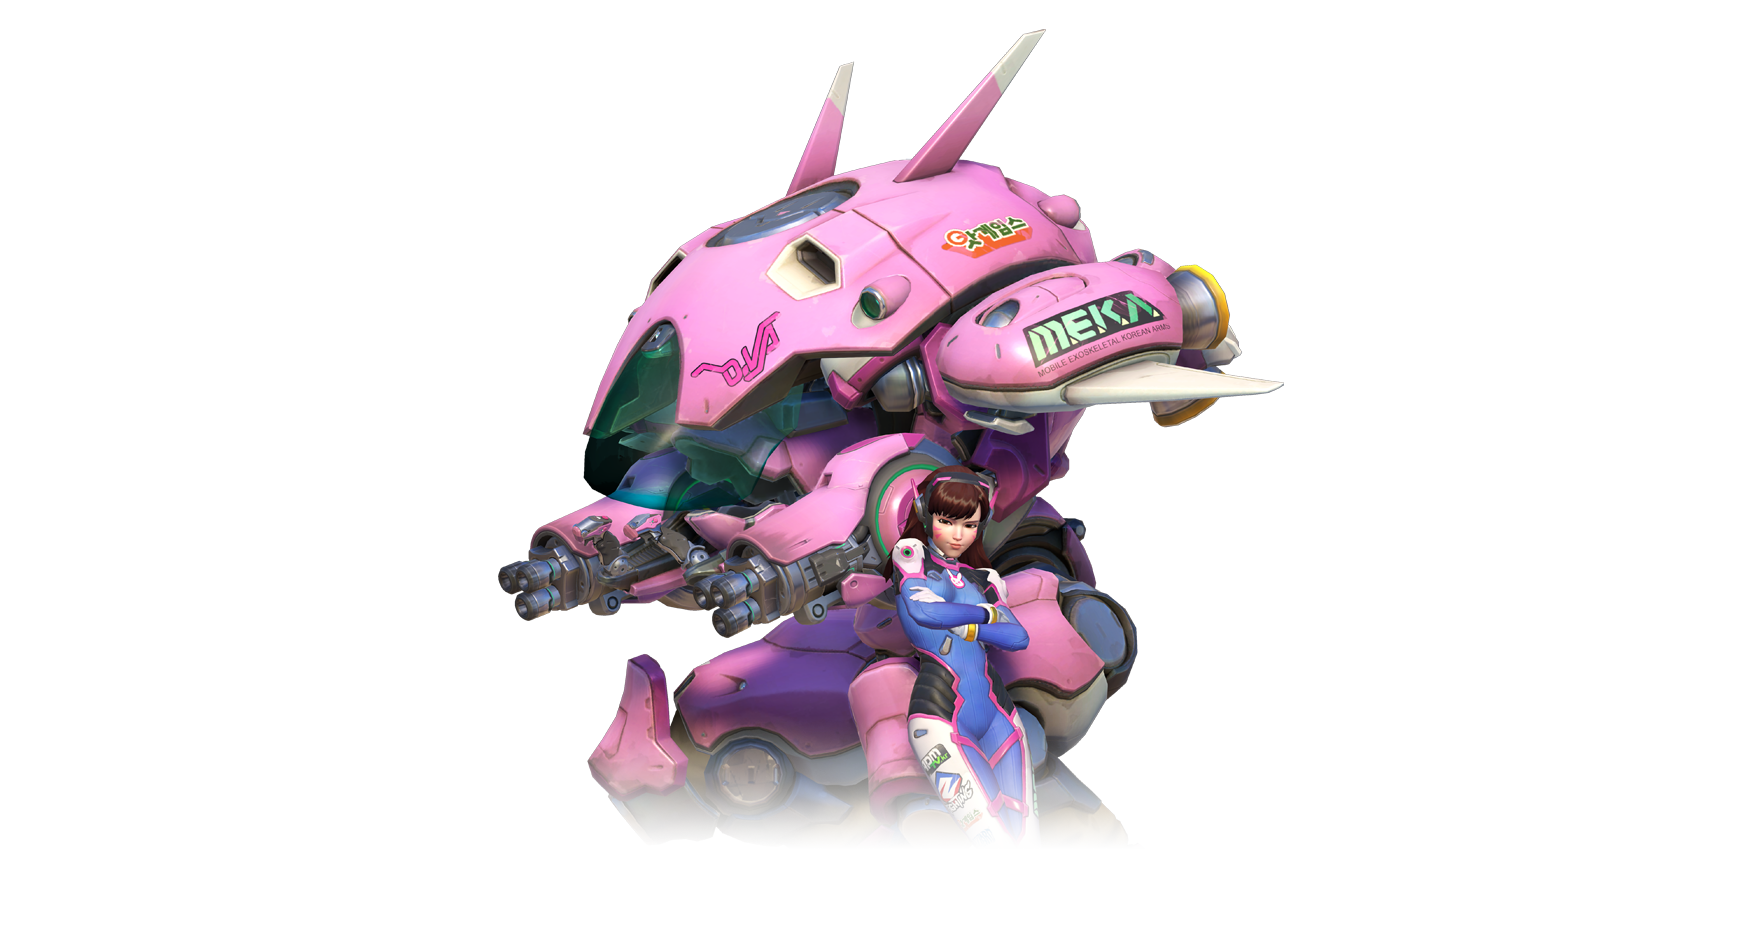 for free download. Overwatch dva png